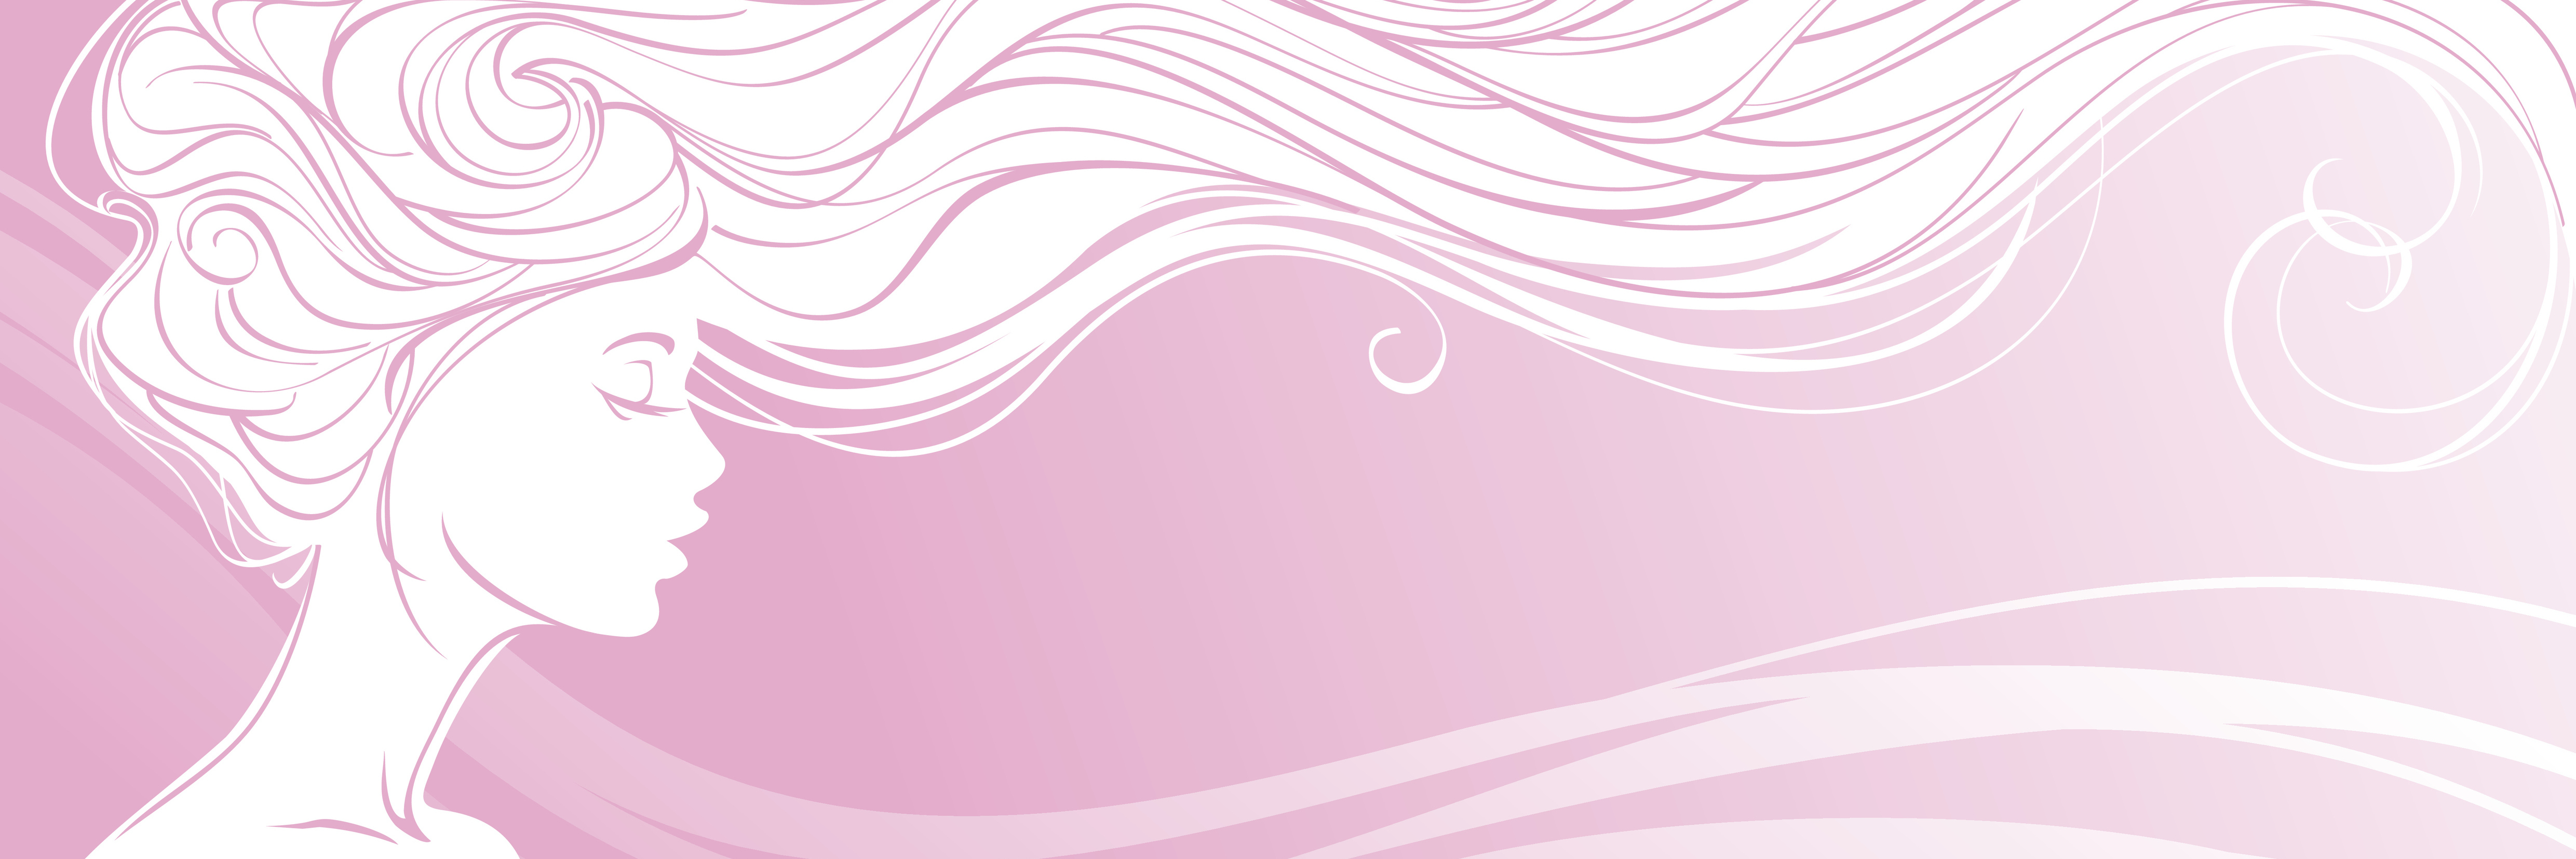 drawing of woman with flowing hair on pink background